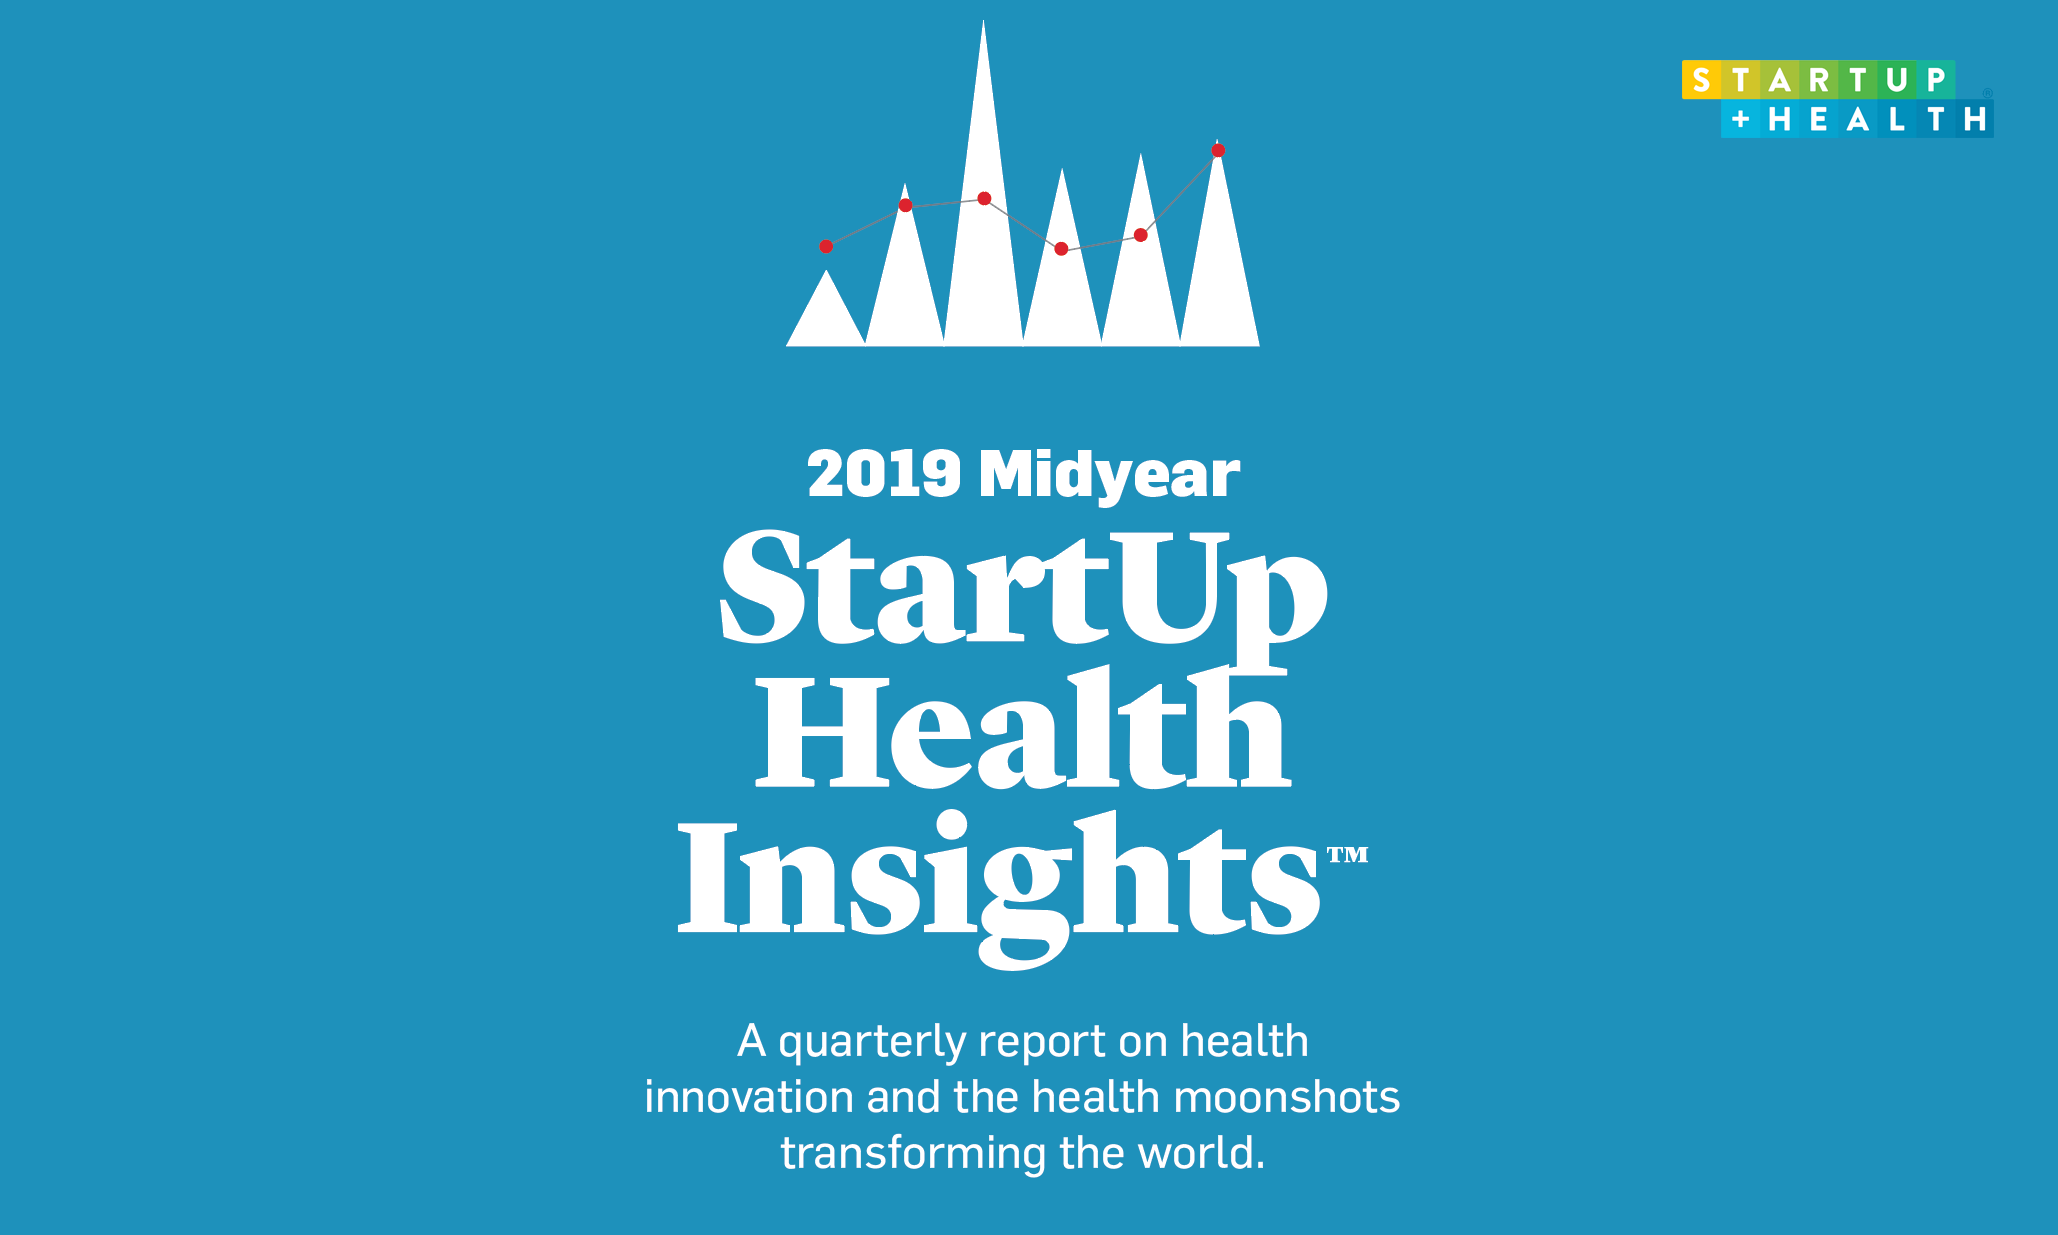 2019-midyear-insights-cover-5x3-logo.png